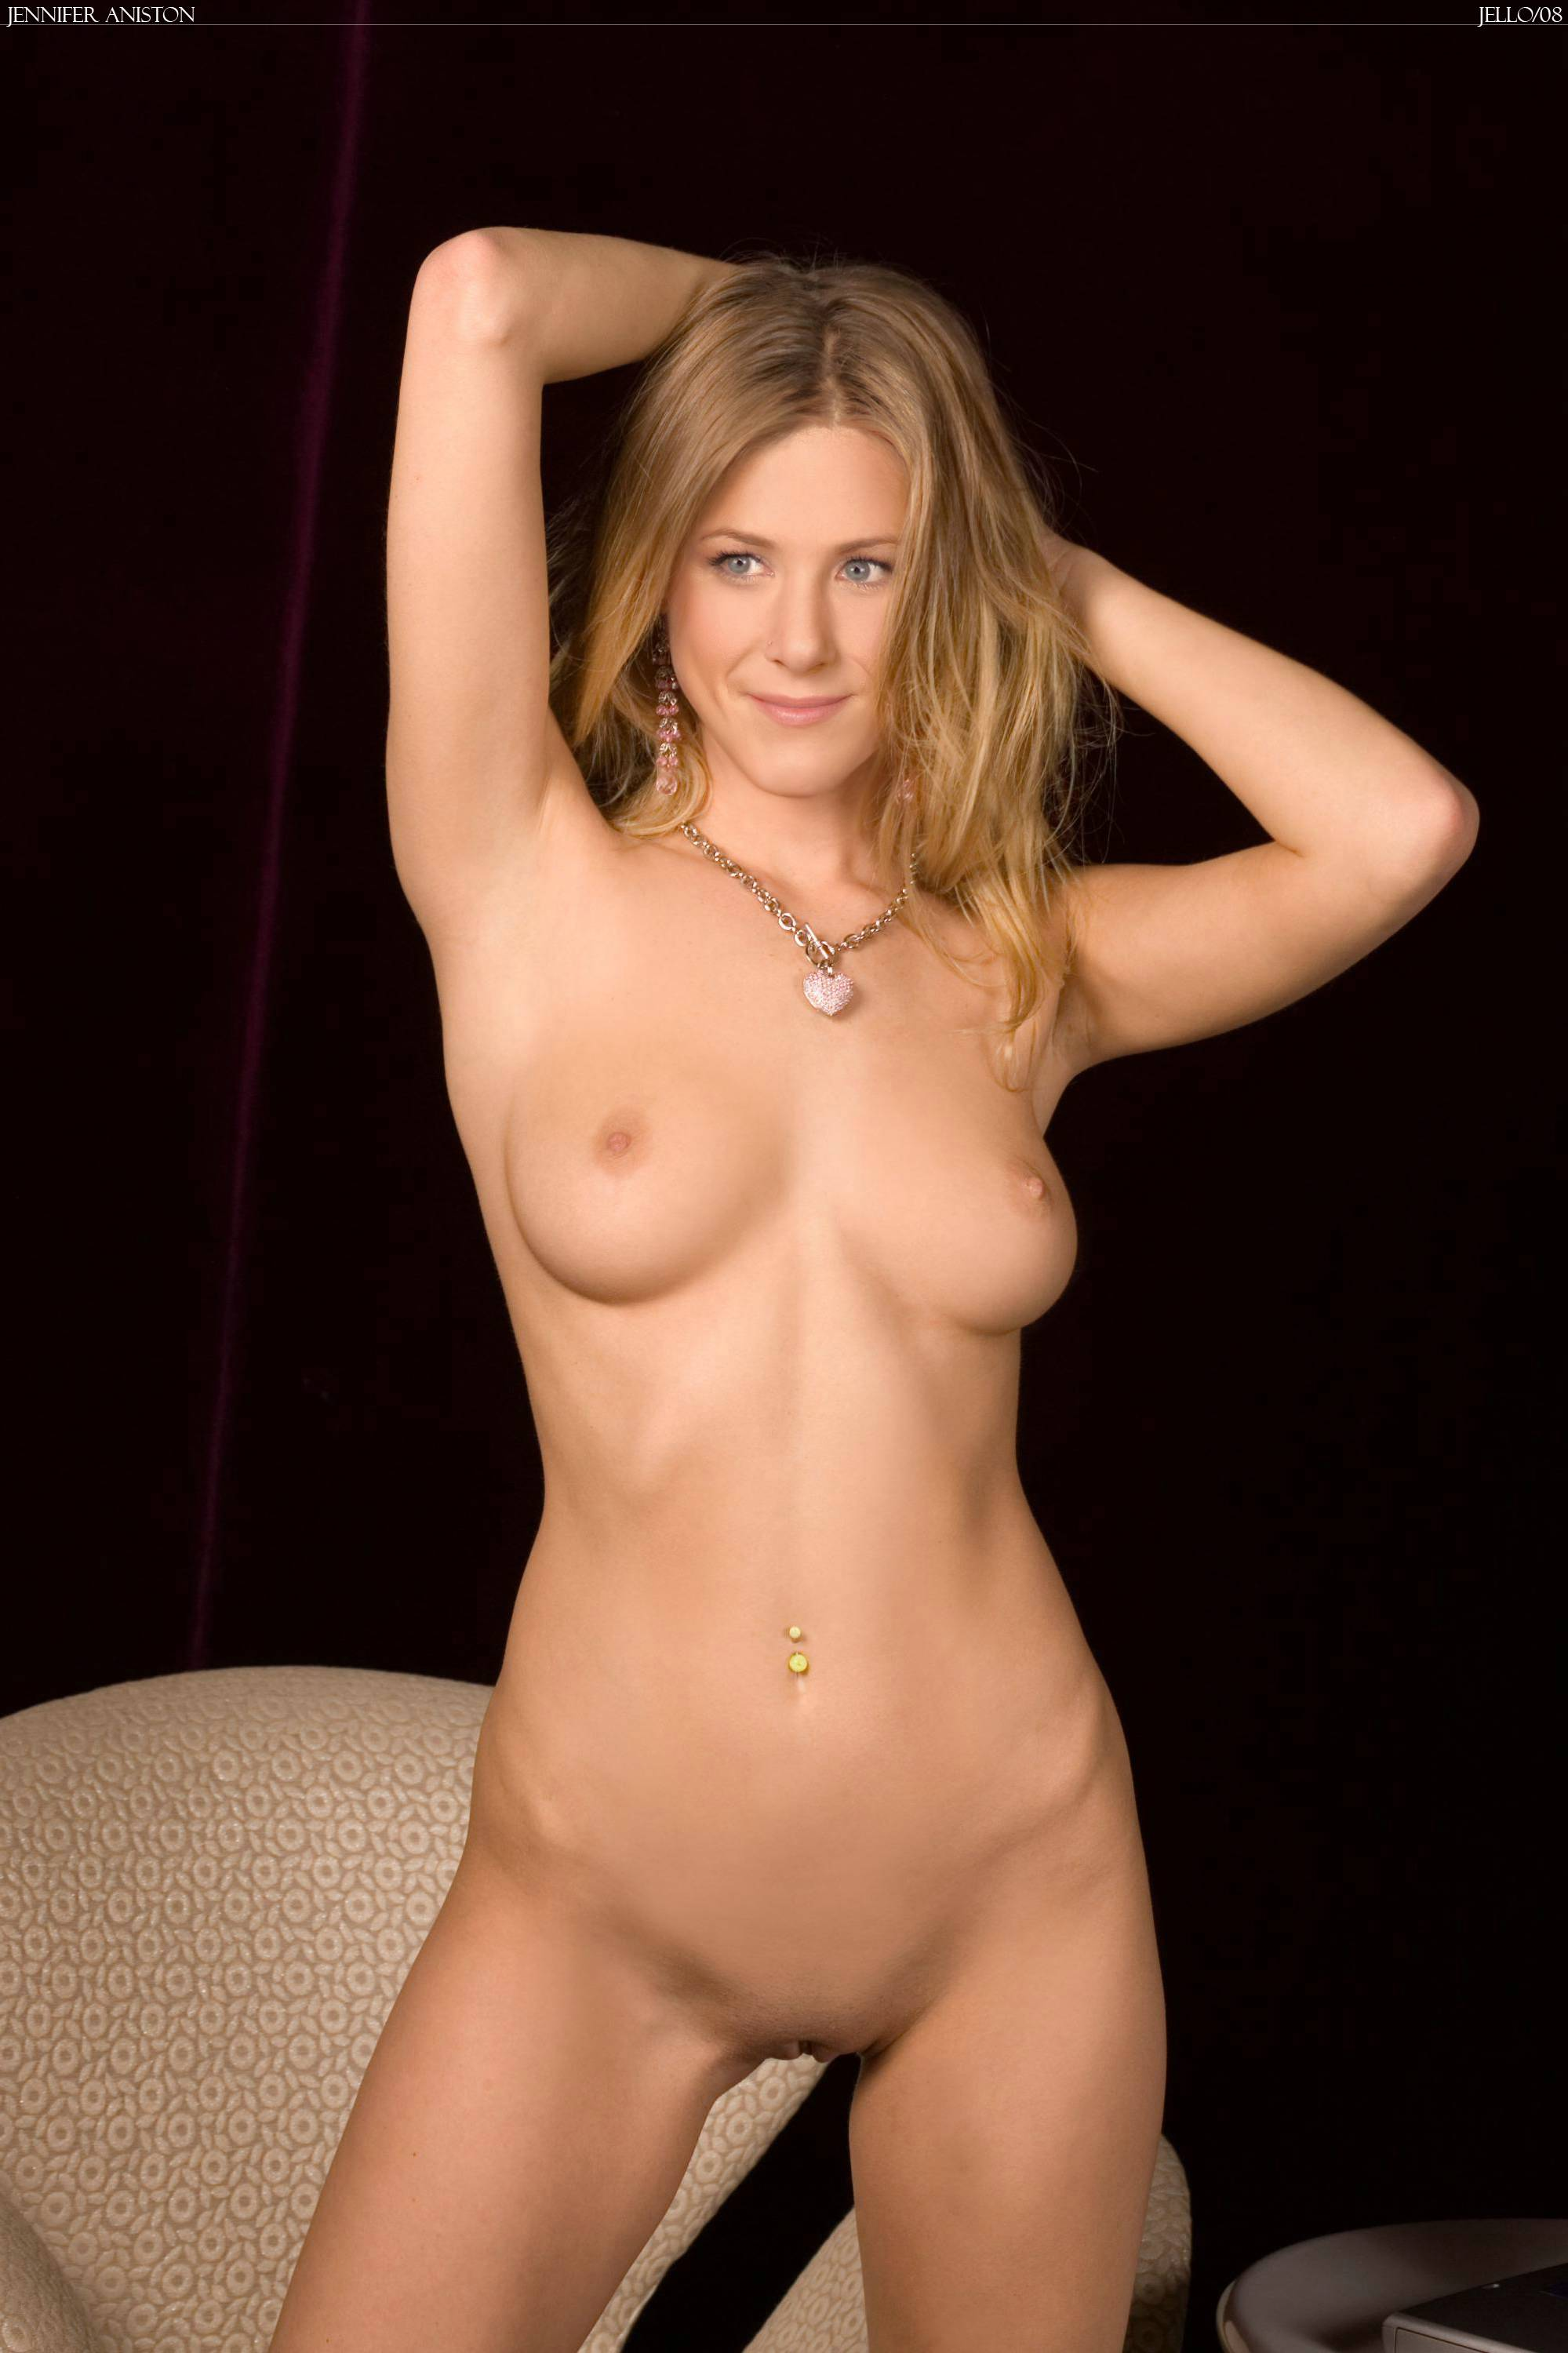 Look porn aniston jennifer alike